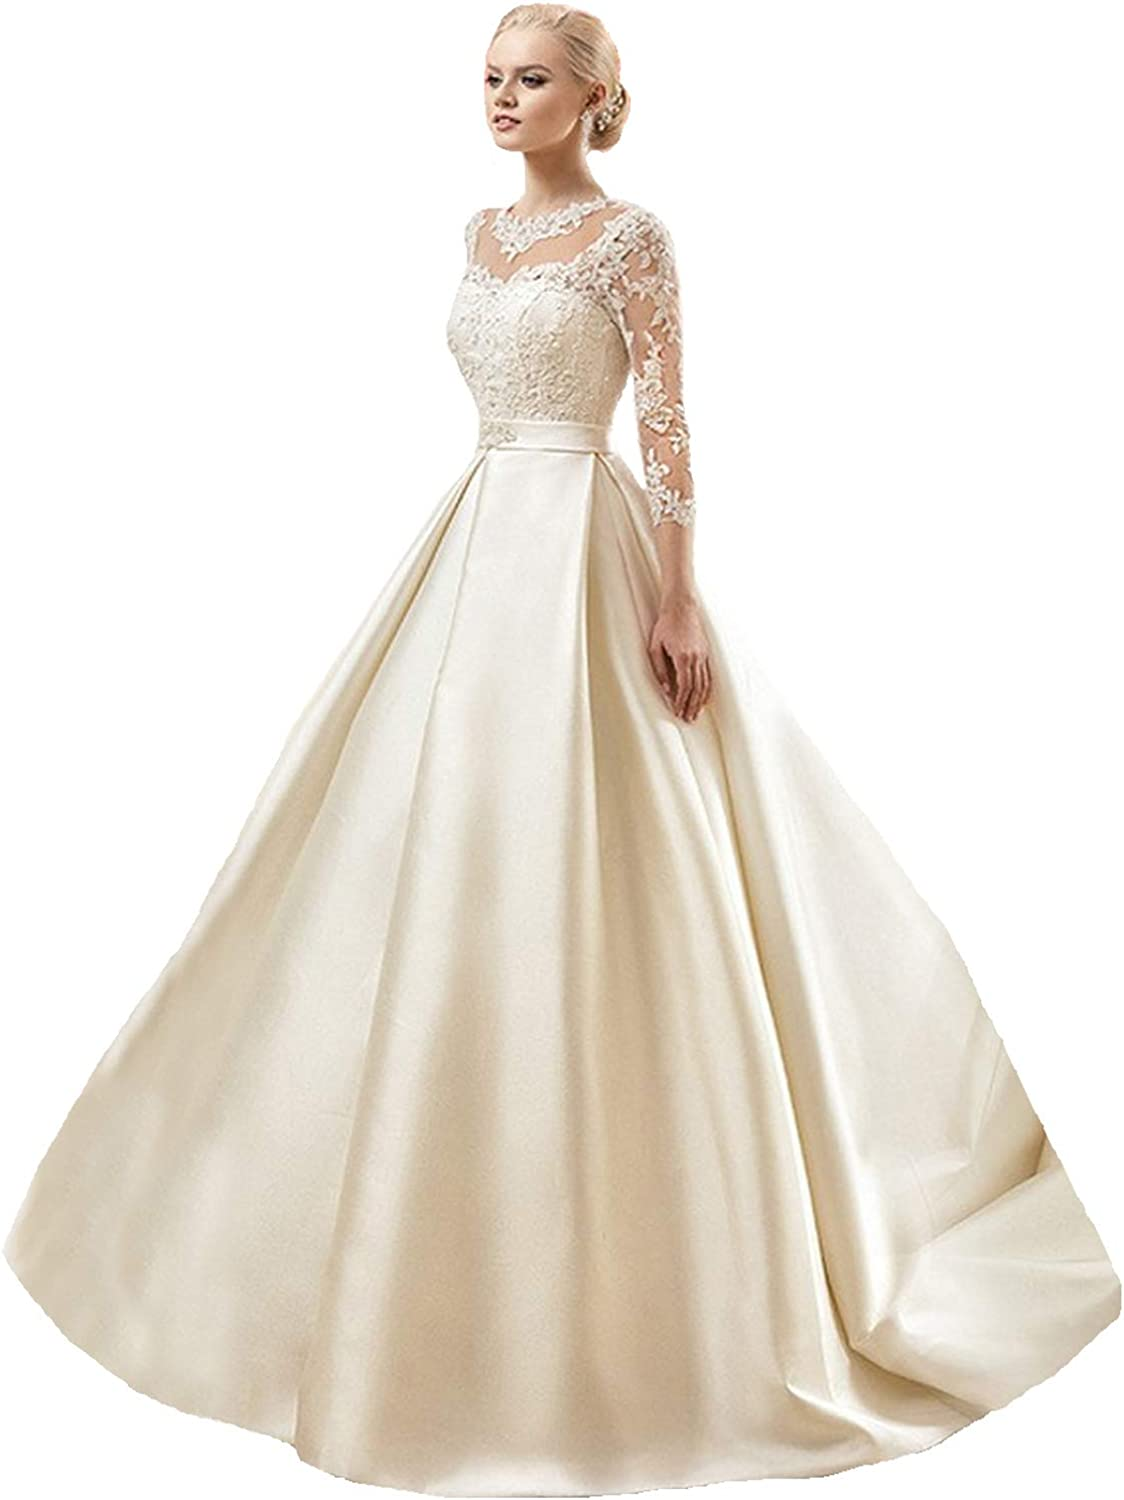 Amazon Com Dimei Lace Ball Gown Wedding Dresses Long Sleeve Princess Bridal Gowns Satin Bride Dress Clothing